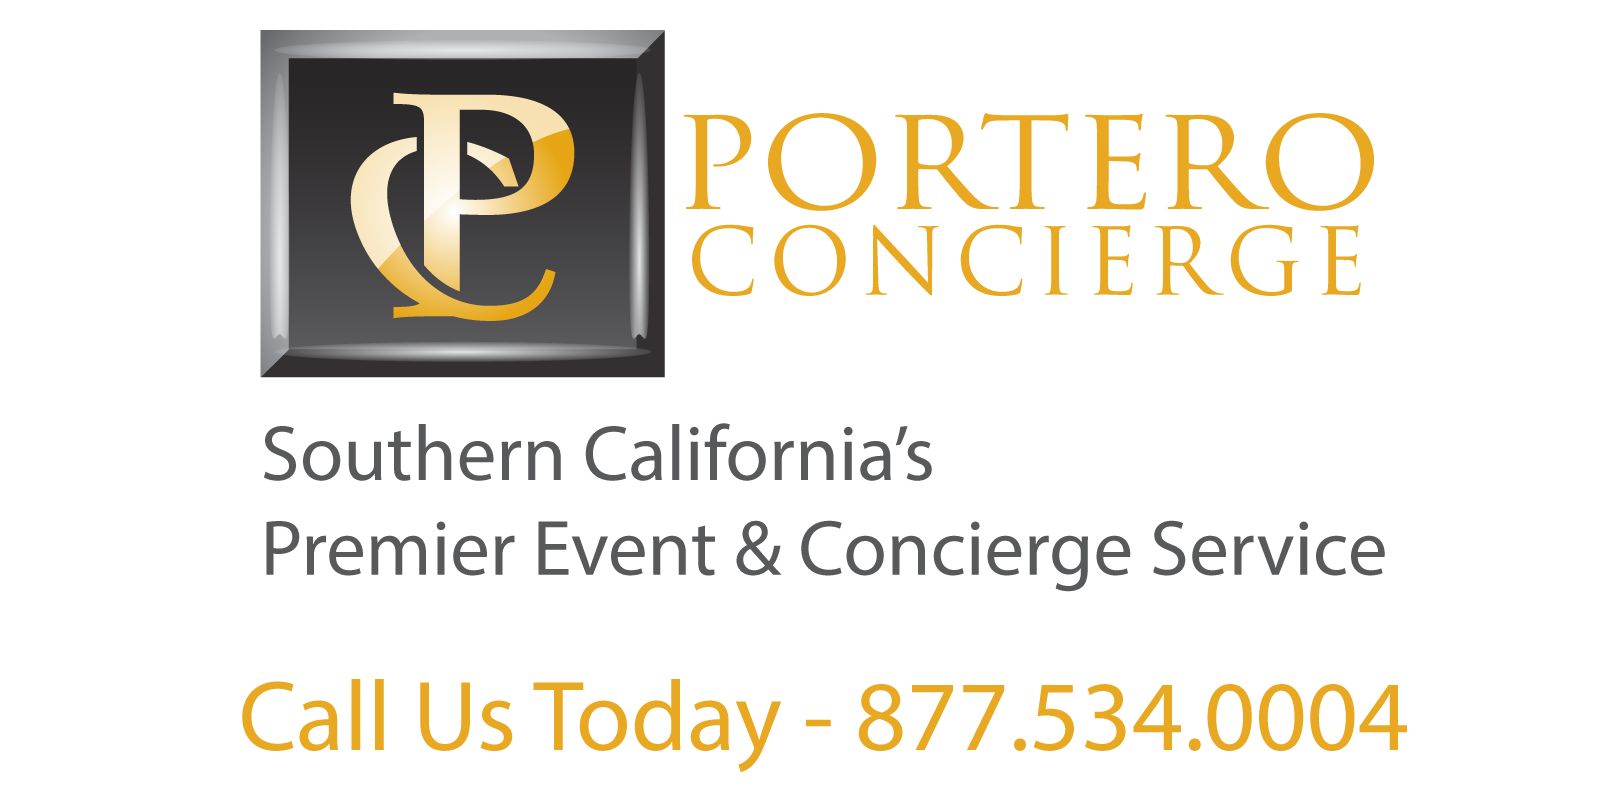 Events. Concierge Services, Event Planning. Professional detail-oriented executive team: portero concierge. Corporate/Onsite Concierge Services. Personal Services and Errands. Holiday Decorations and Lighting. Contact